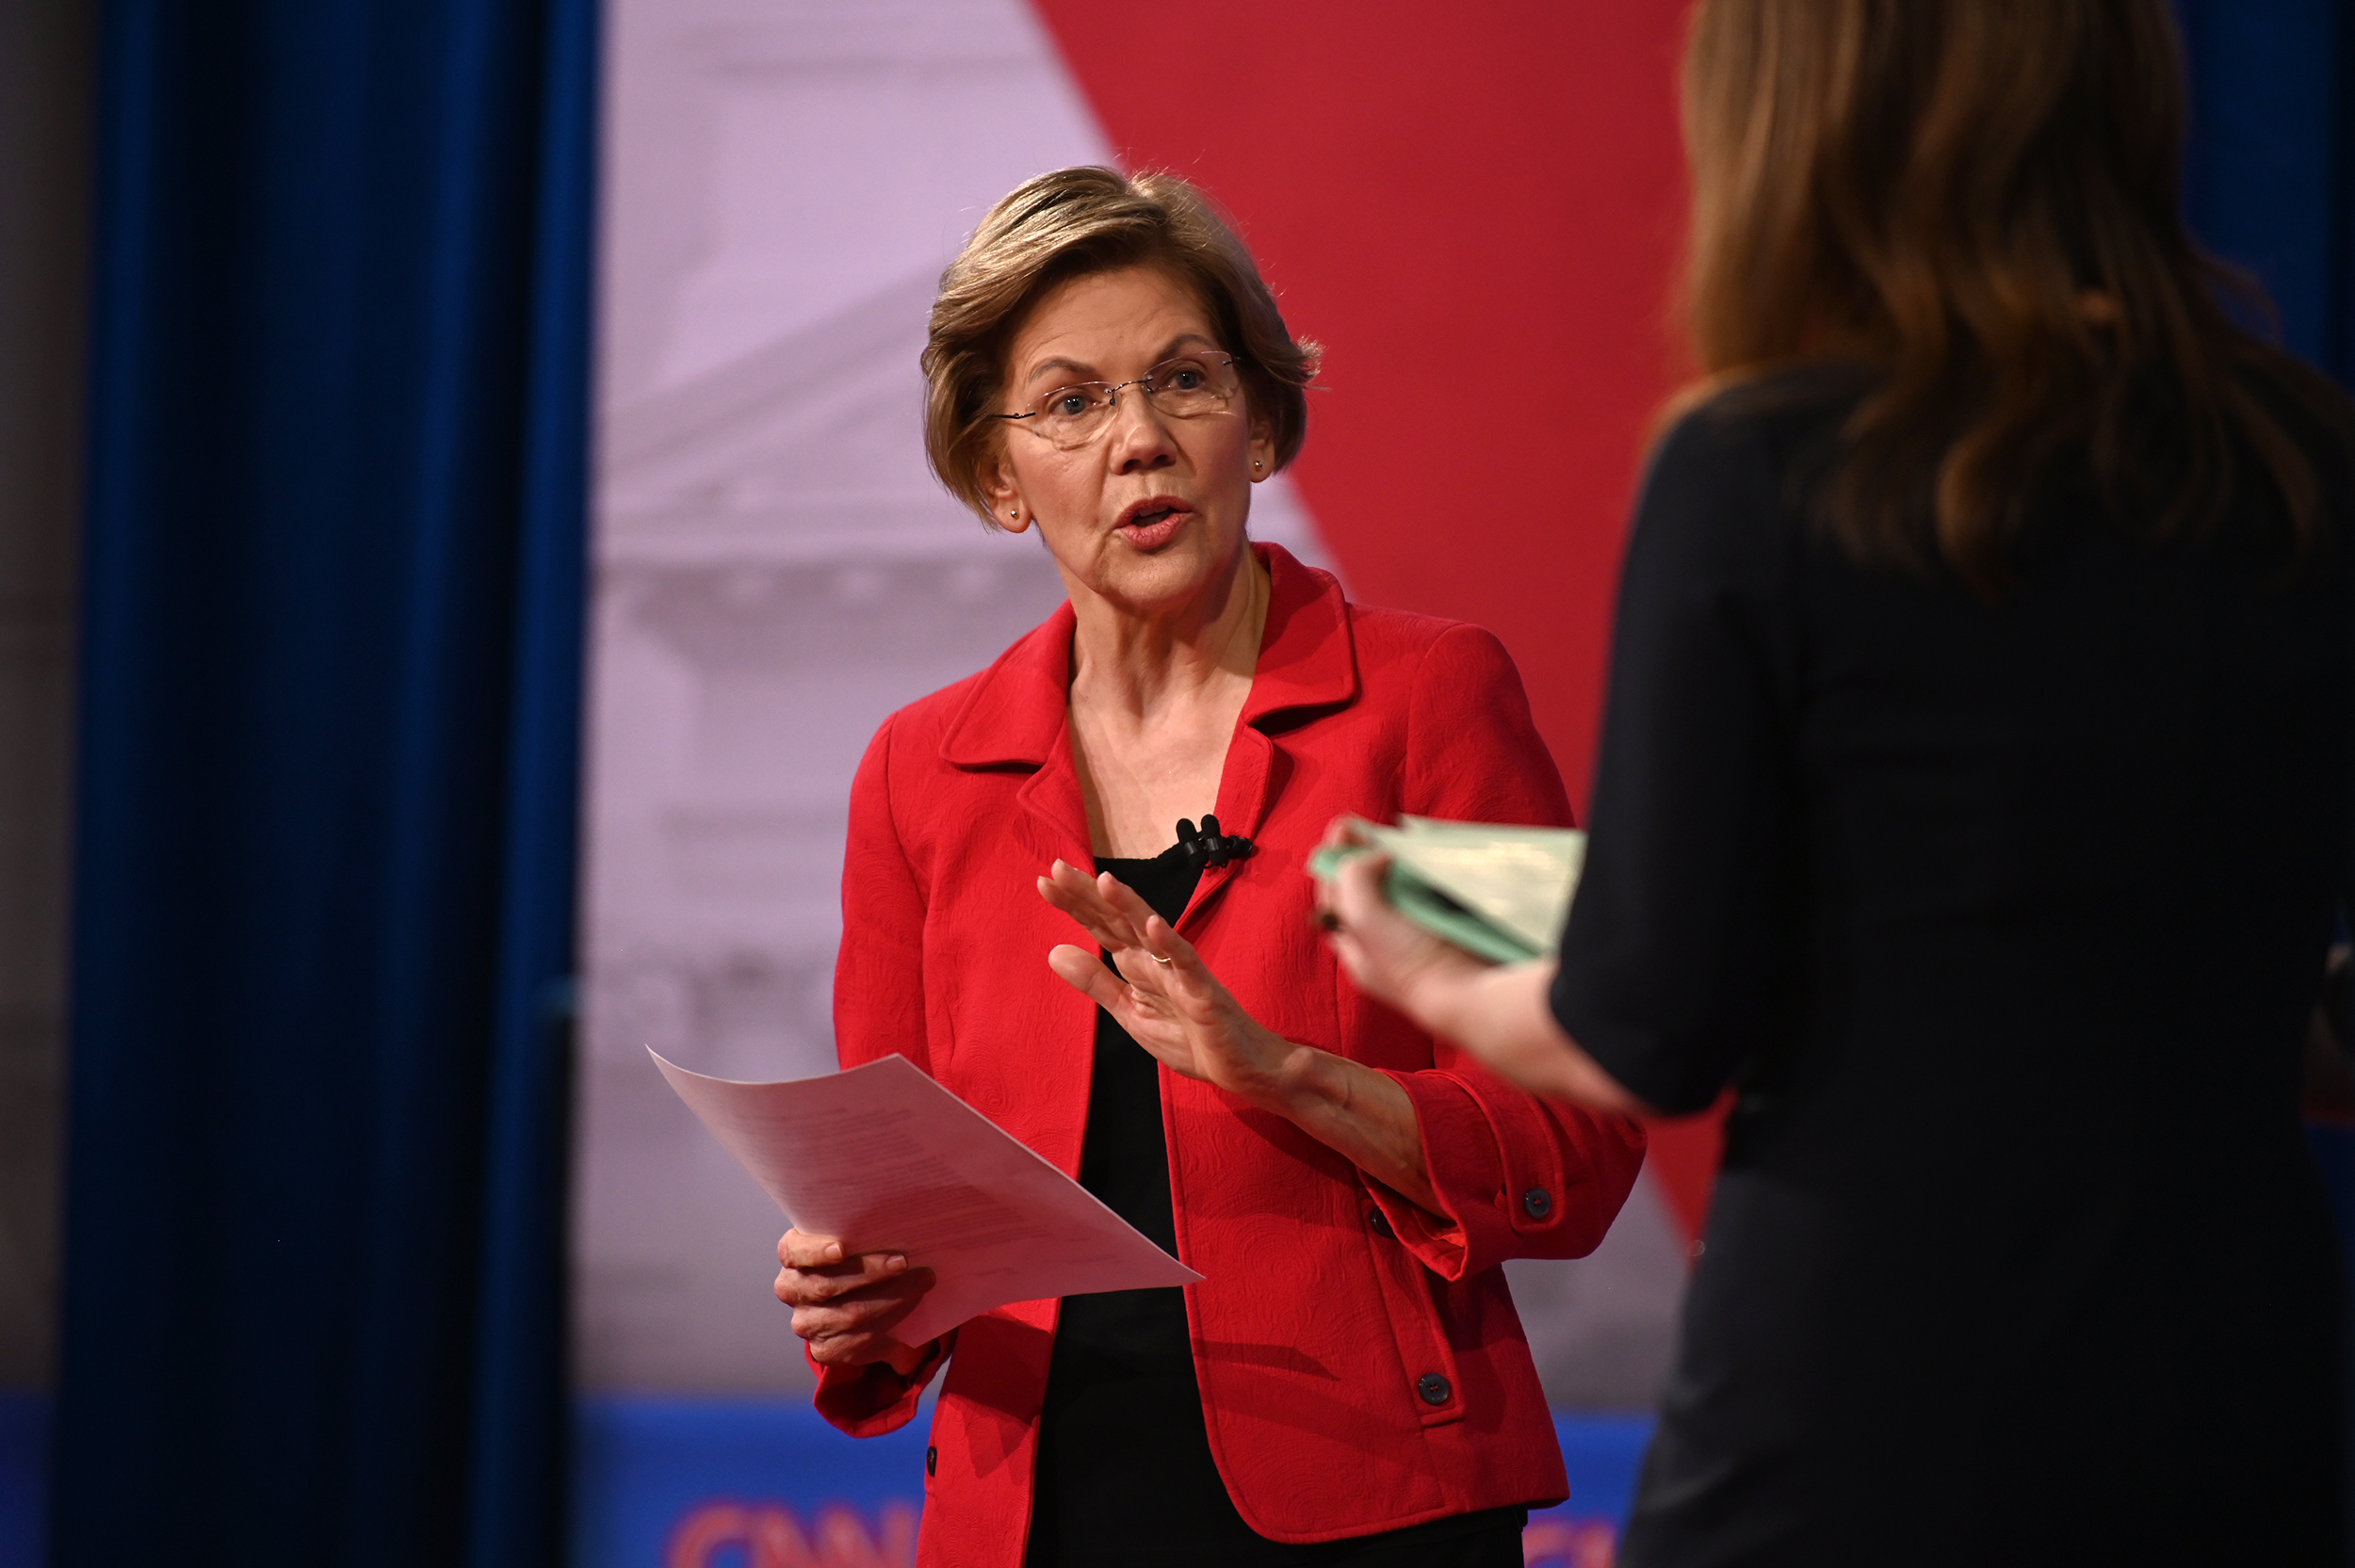 Warren proposes contract to free women from Bloomberg confidentiality agreements